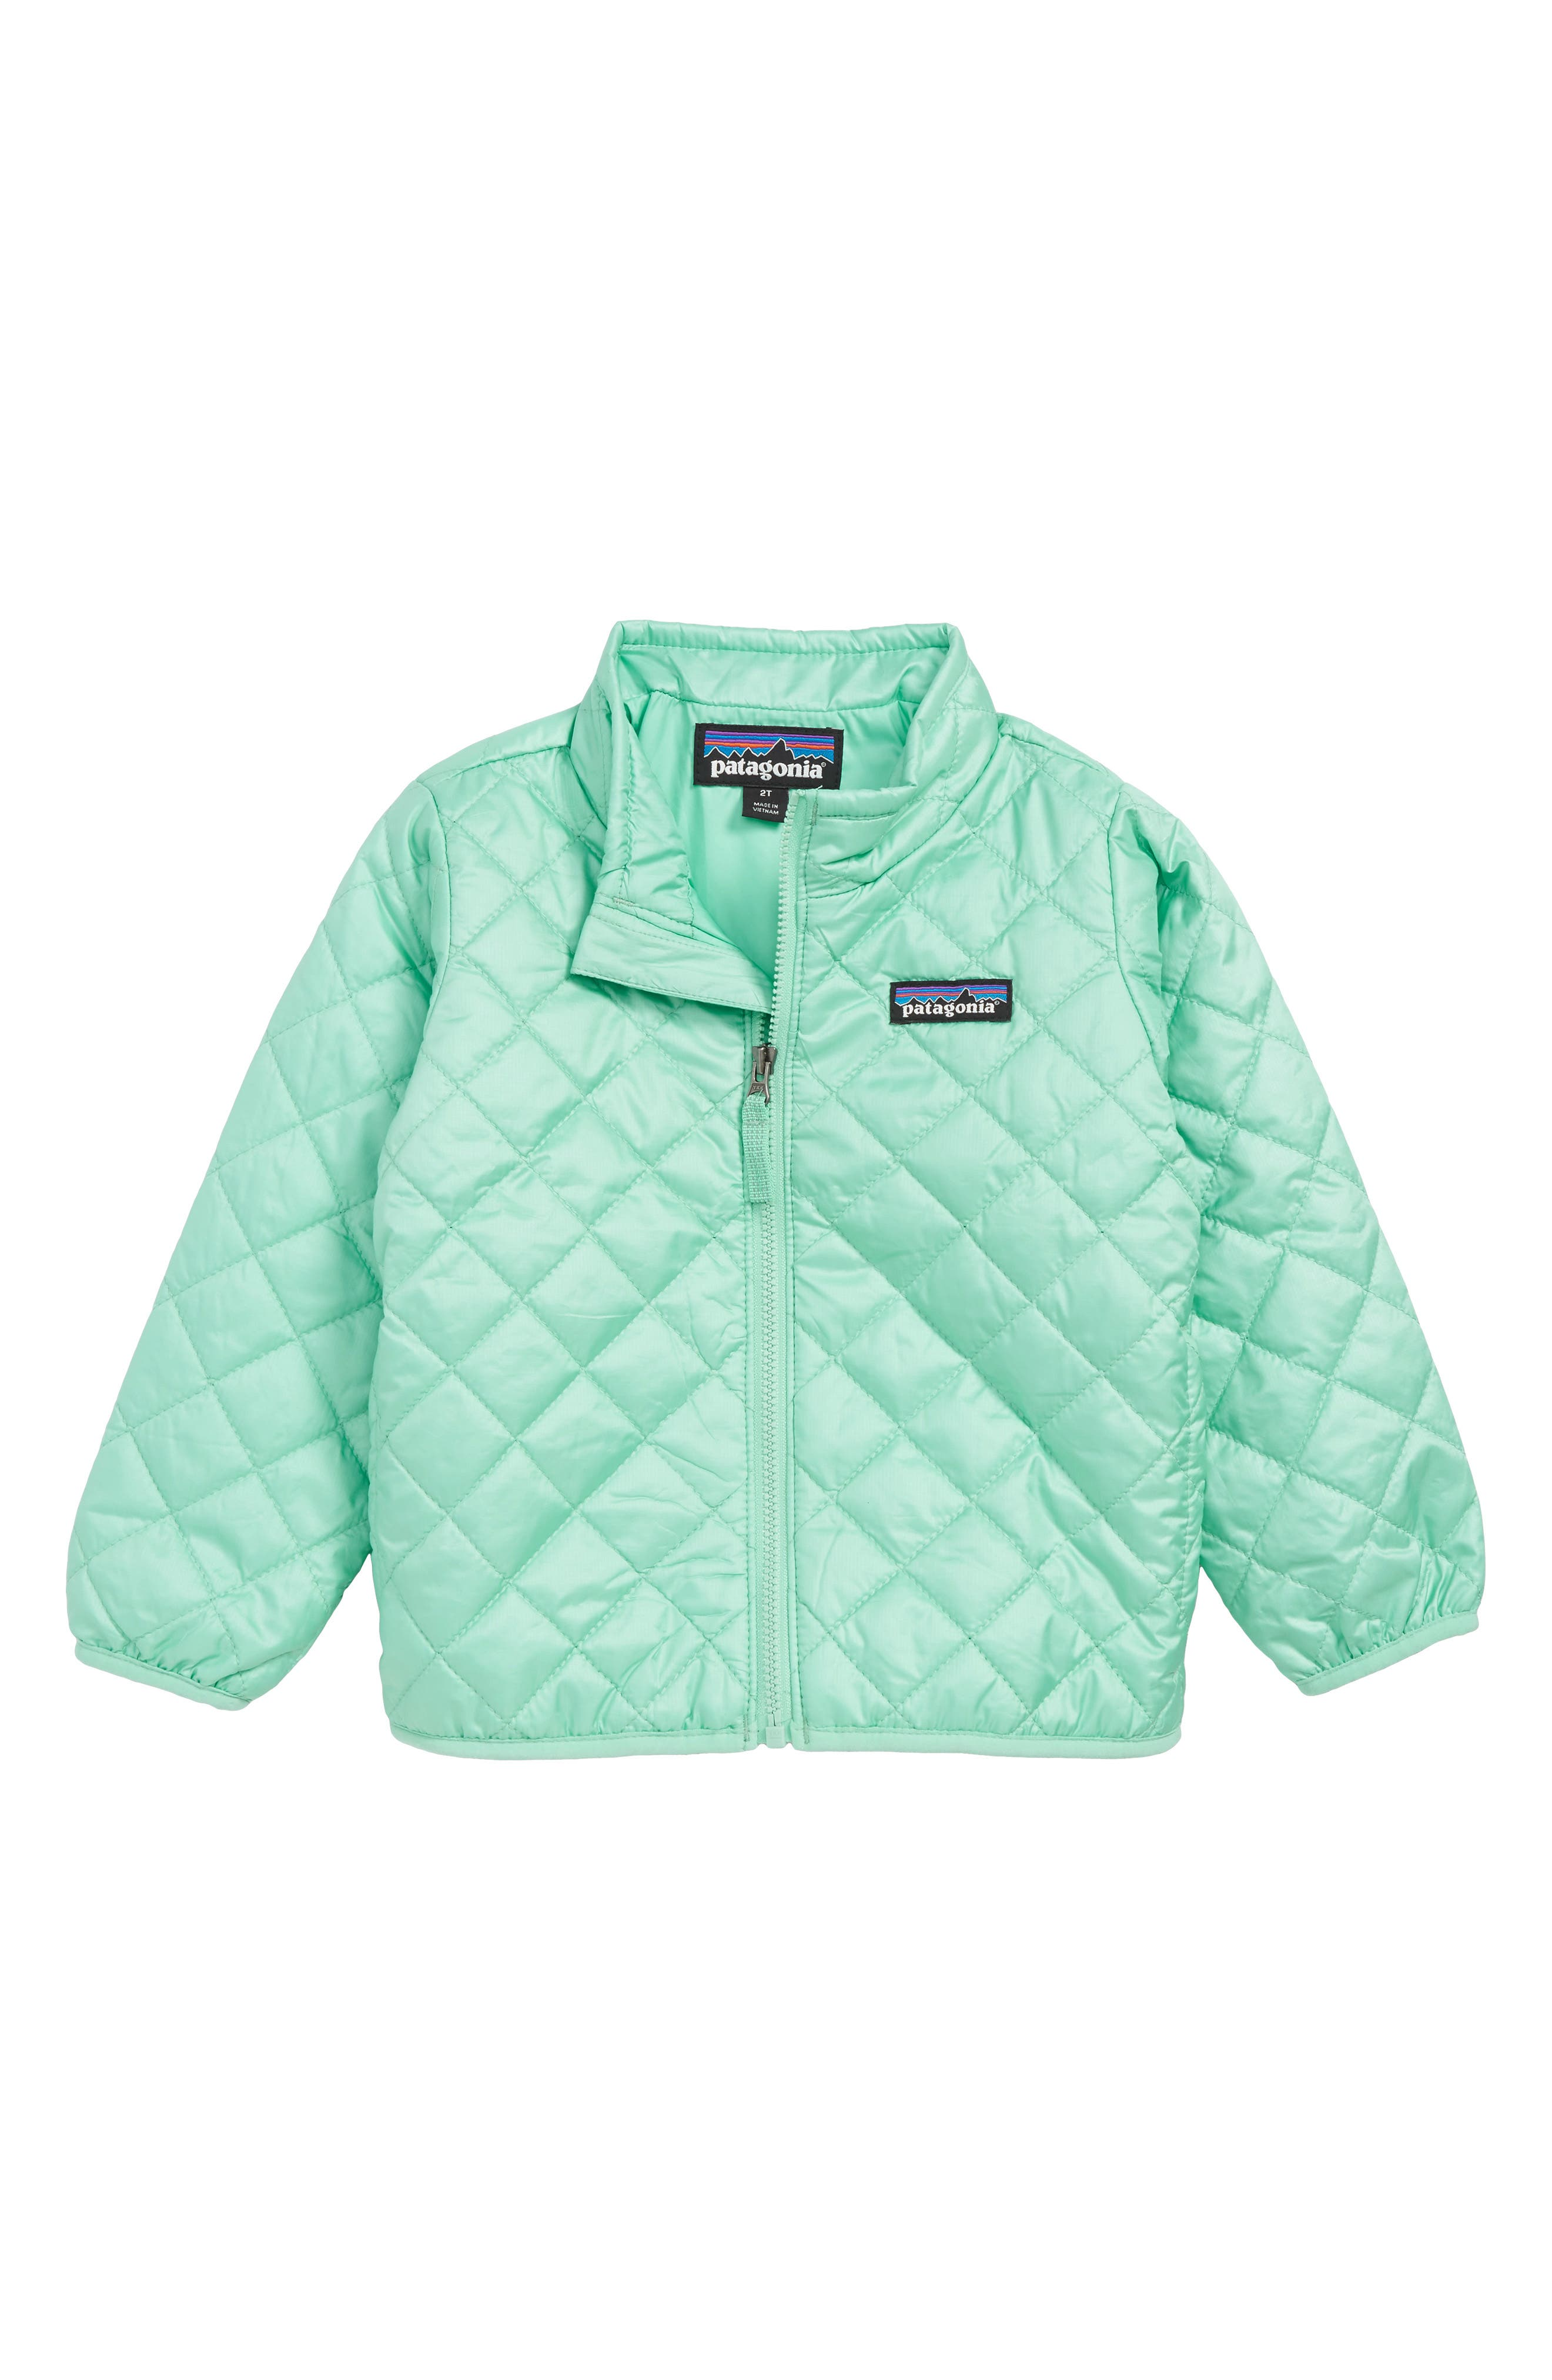 PATAGONIA Nano Puff<sup>®</sup> Quilted Water Resistant Jacket, Main, color, VJOSA GREEN